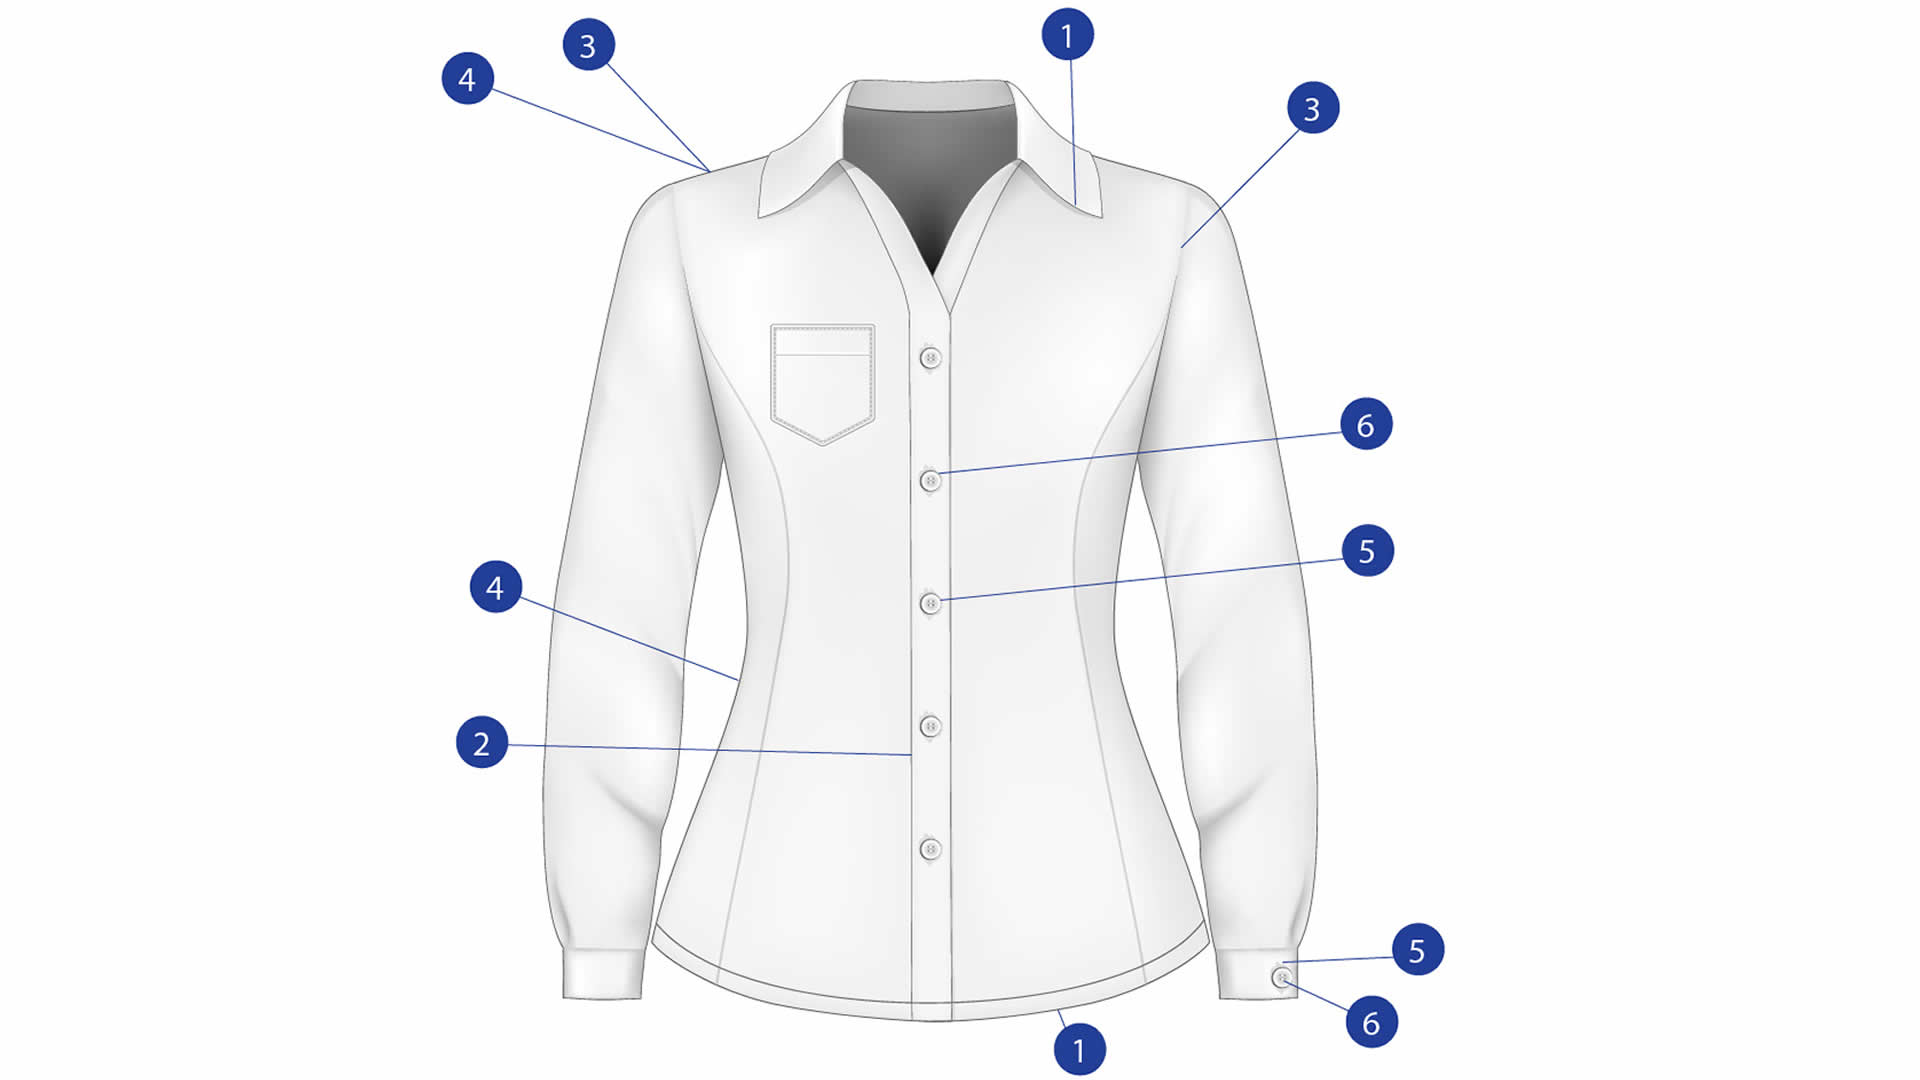 Ladieswear Blouse diagram